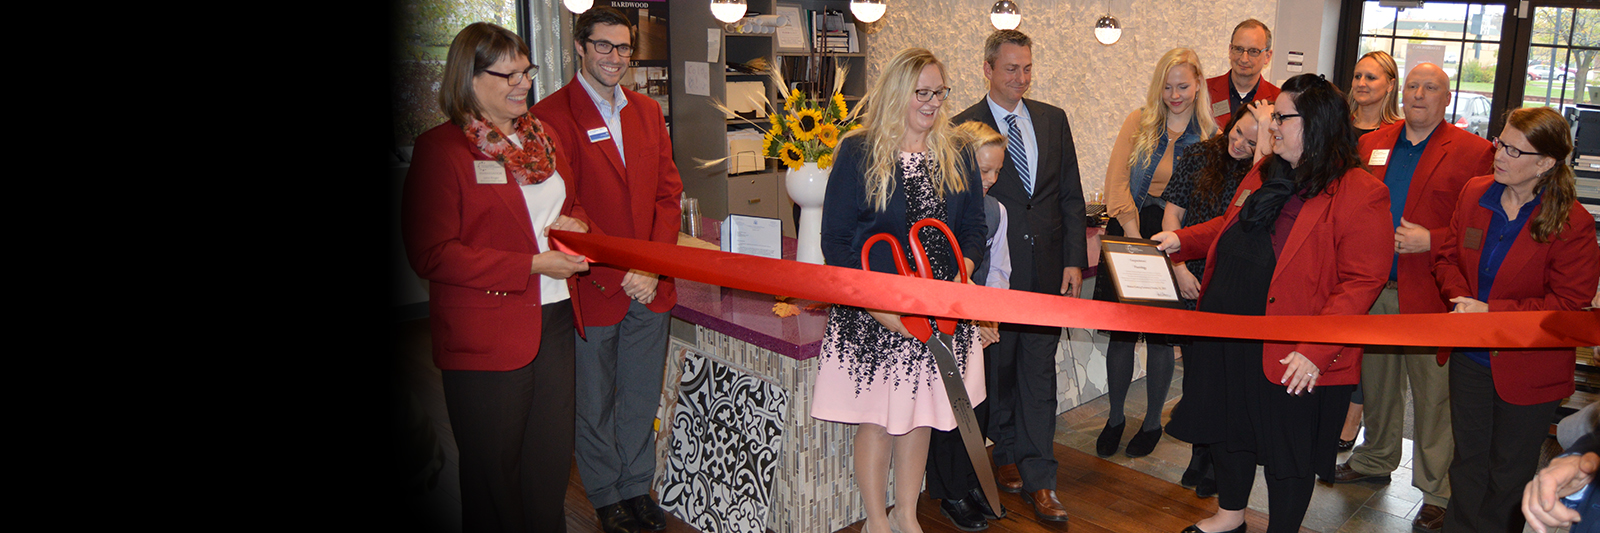 Ribboncutting.jpg